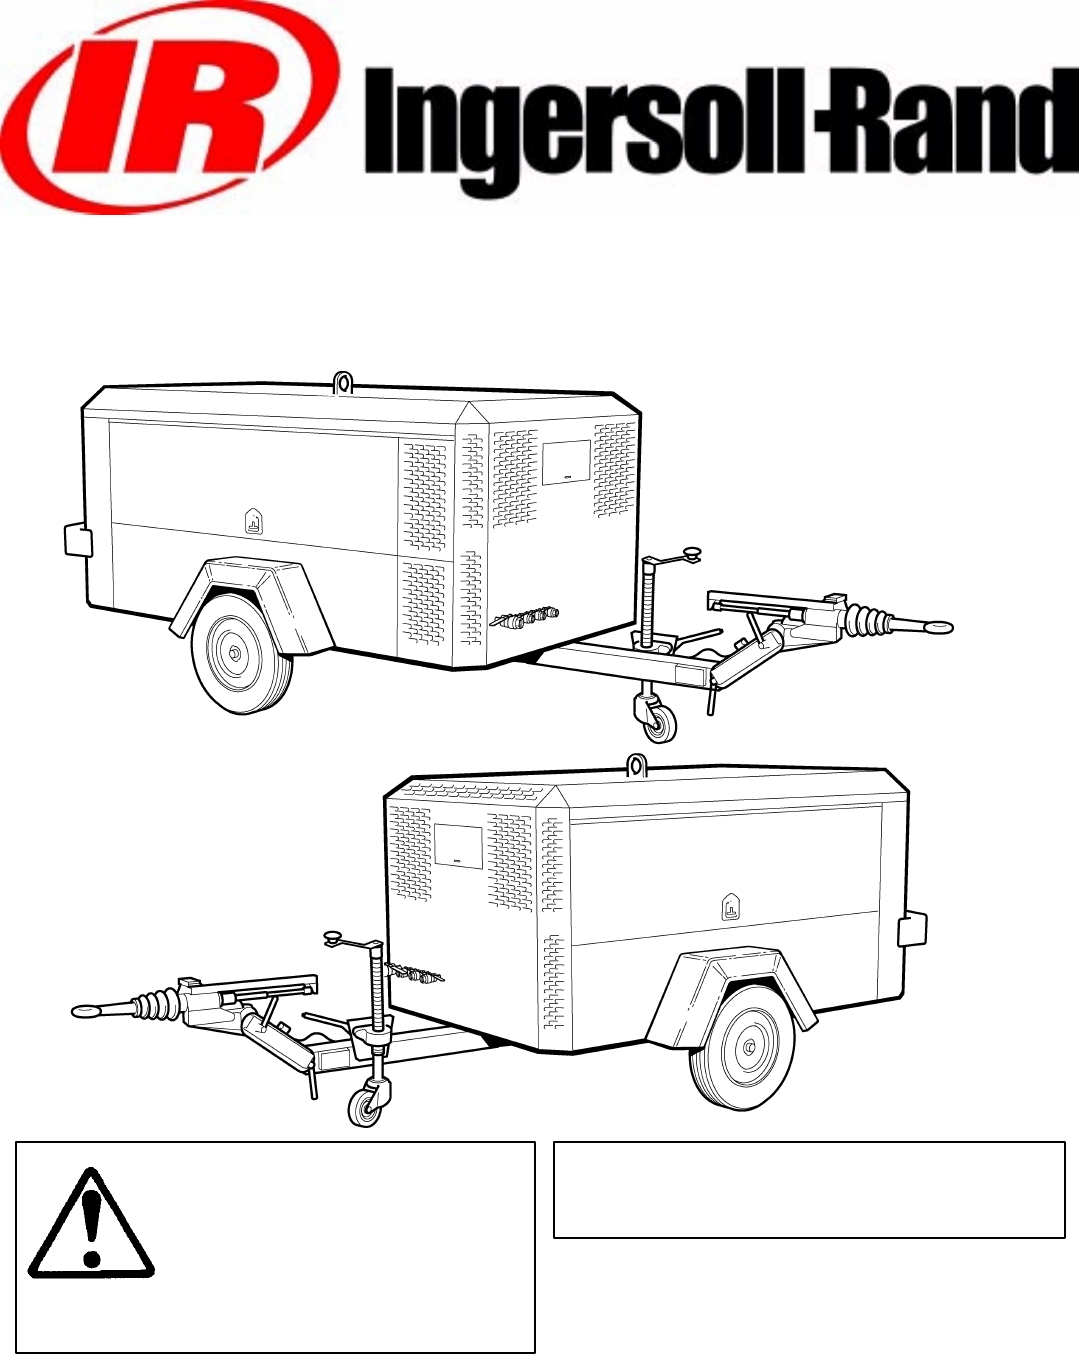 Ingersoll Rand Air Compressor Parts Diagram